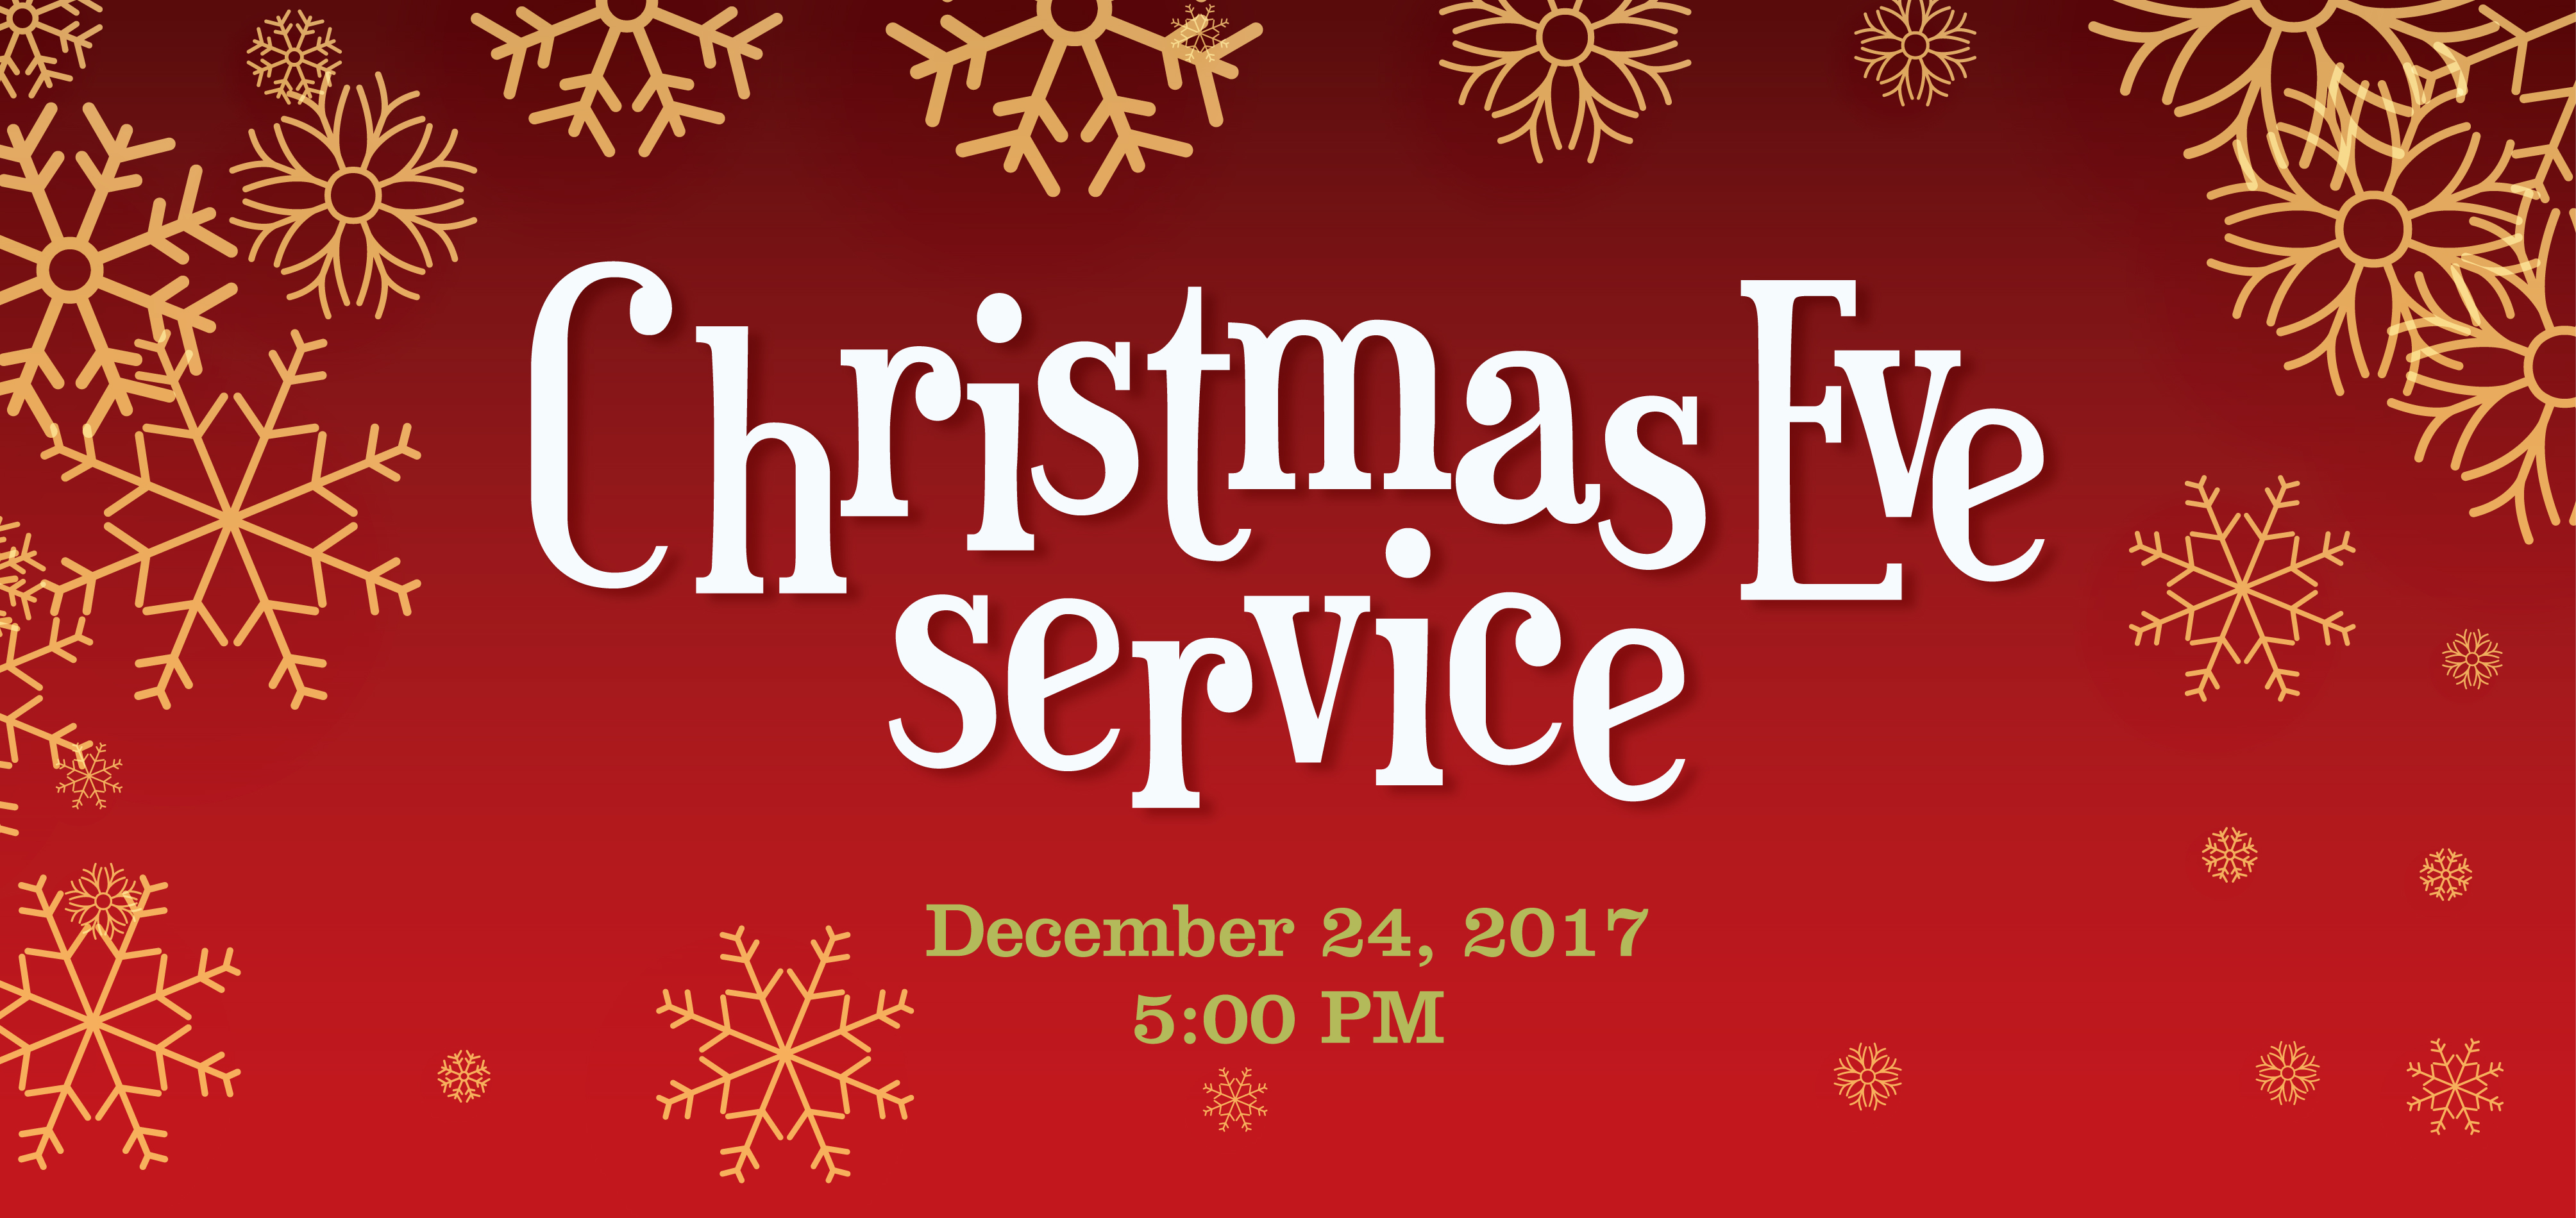 event details christmas eve service - Christmas Church Service